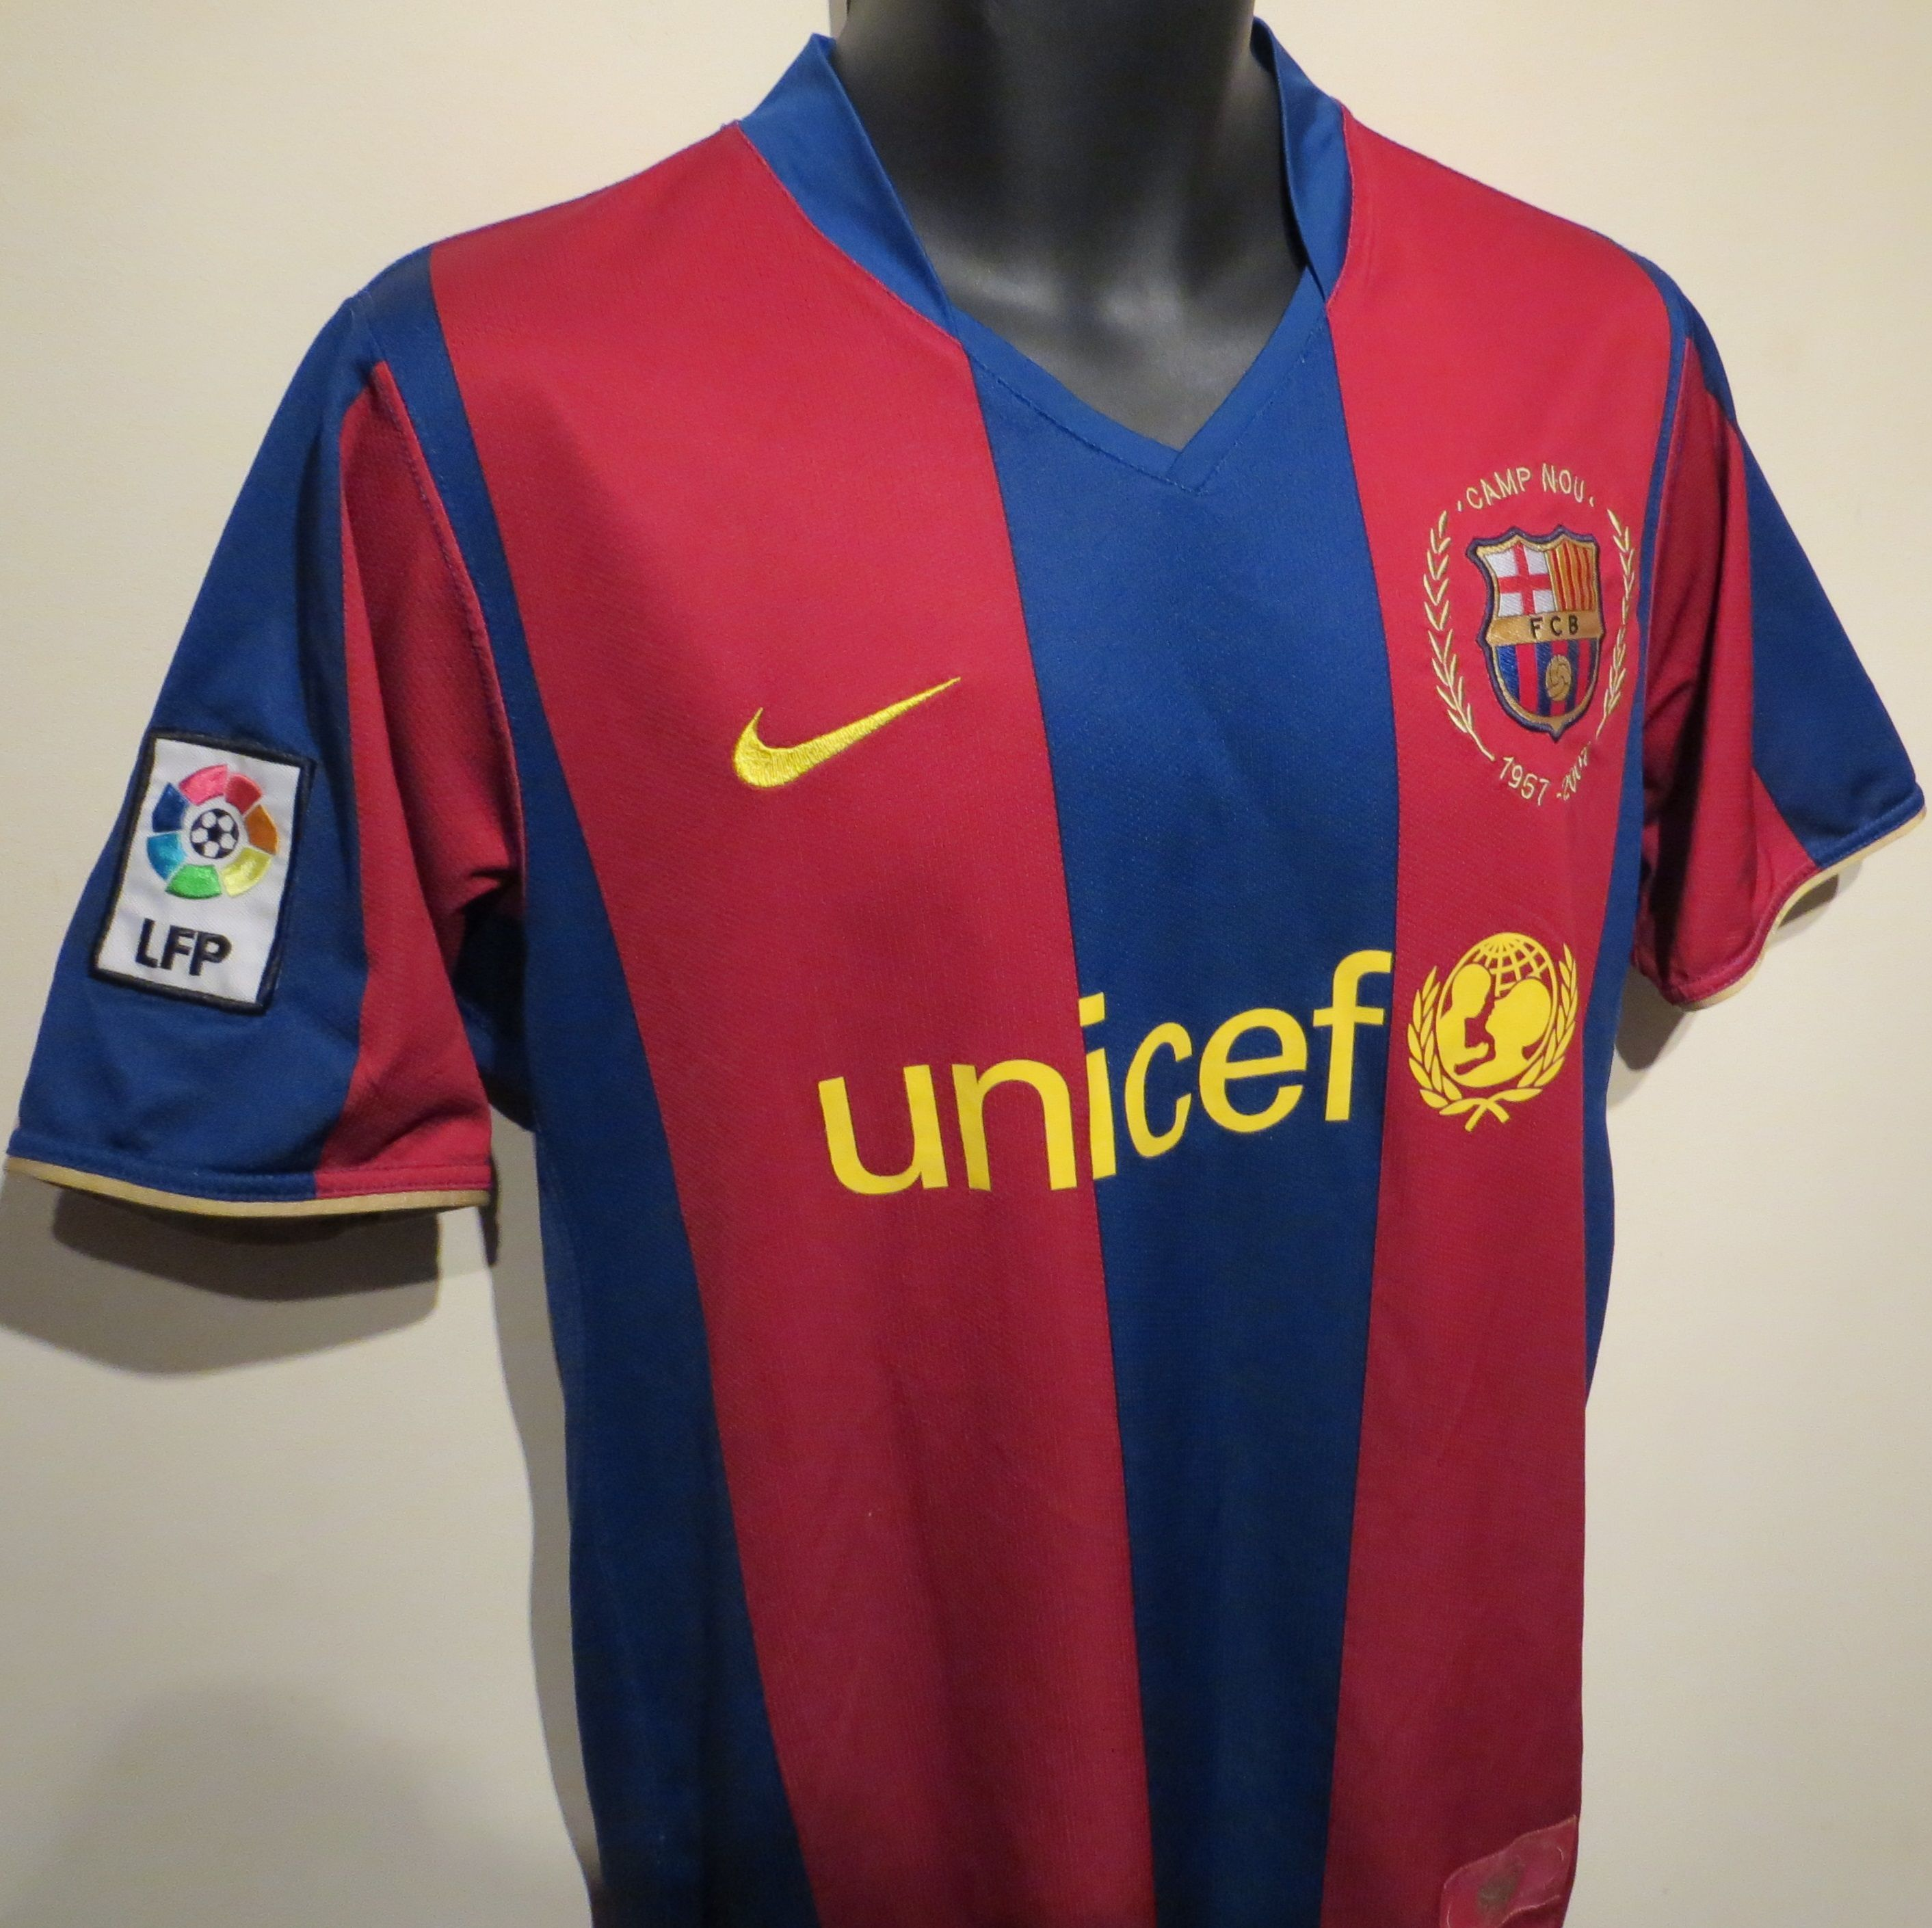 d3c55978f90 FC Barcelona  50 Years NOU CAMP  home shirt by Nike.  Barca